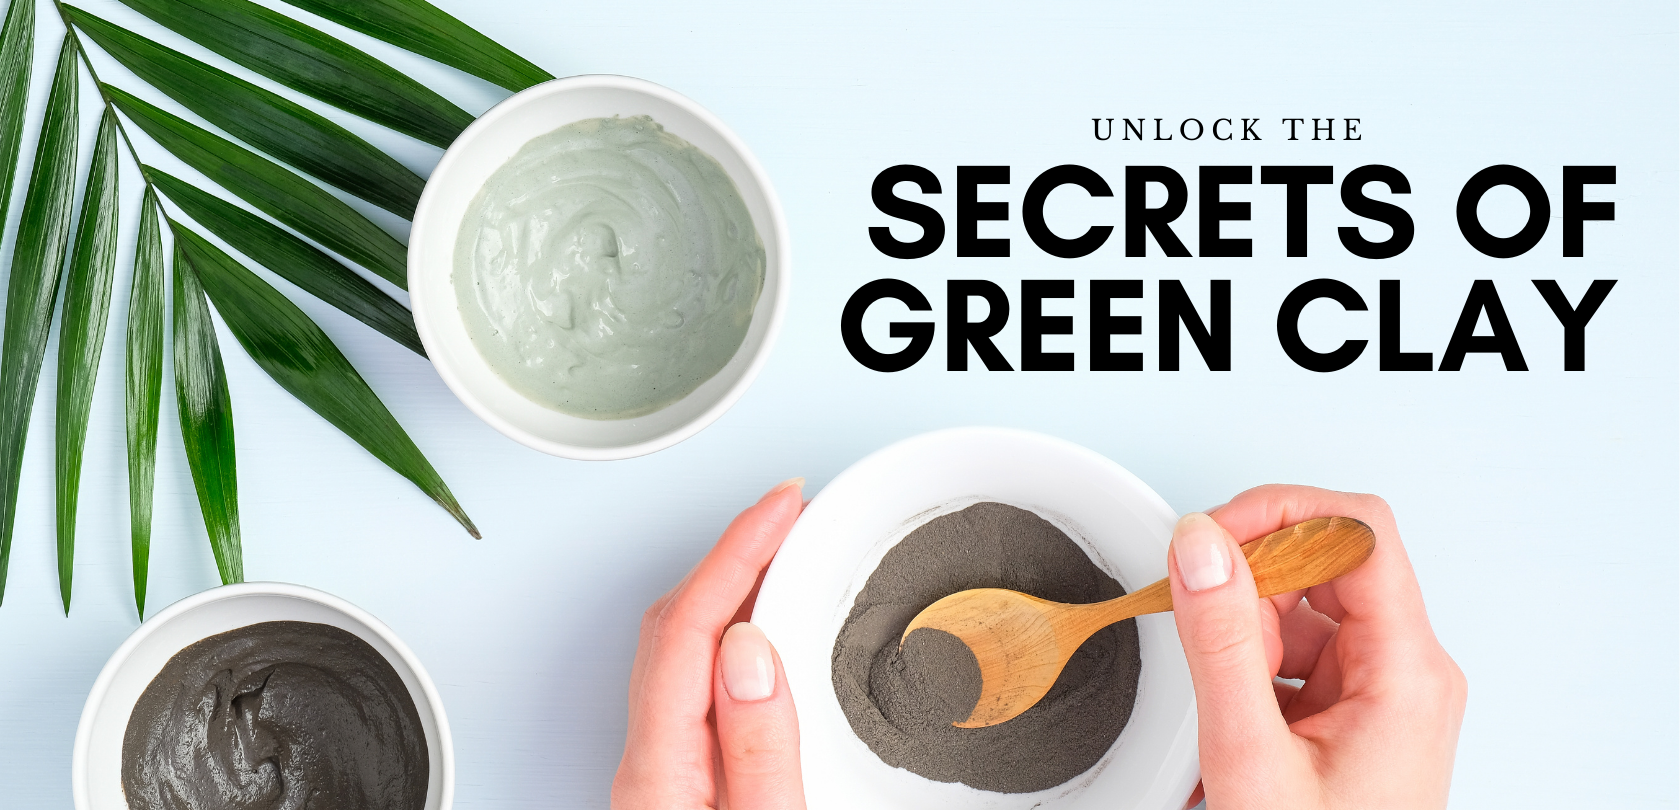 Unlock the Secrets of Green Clay